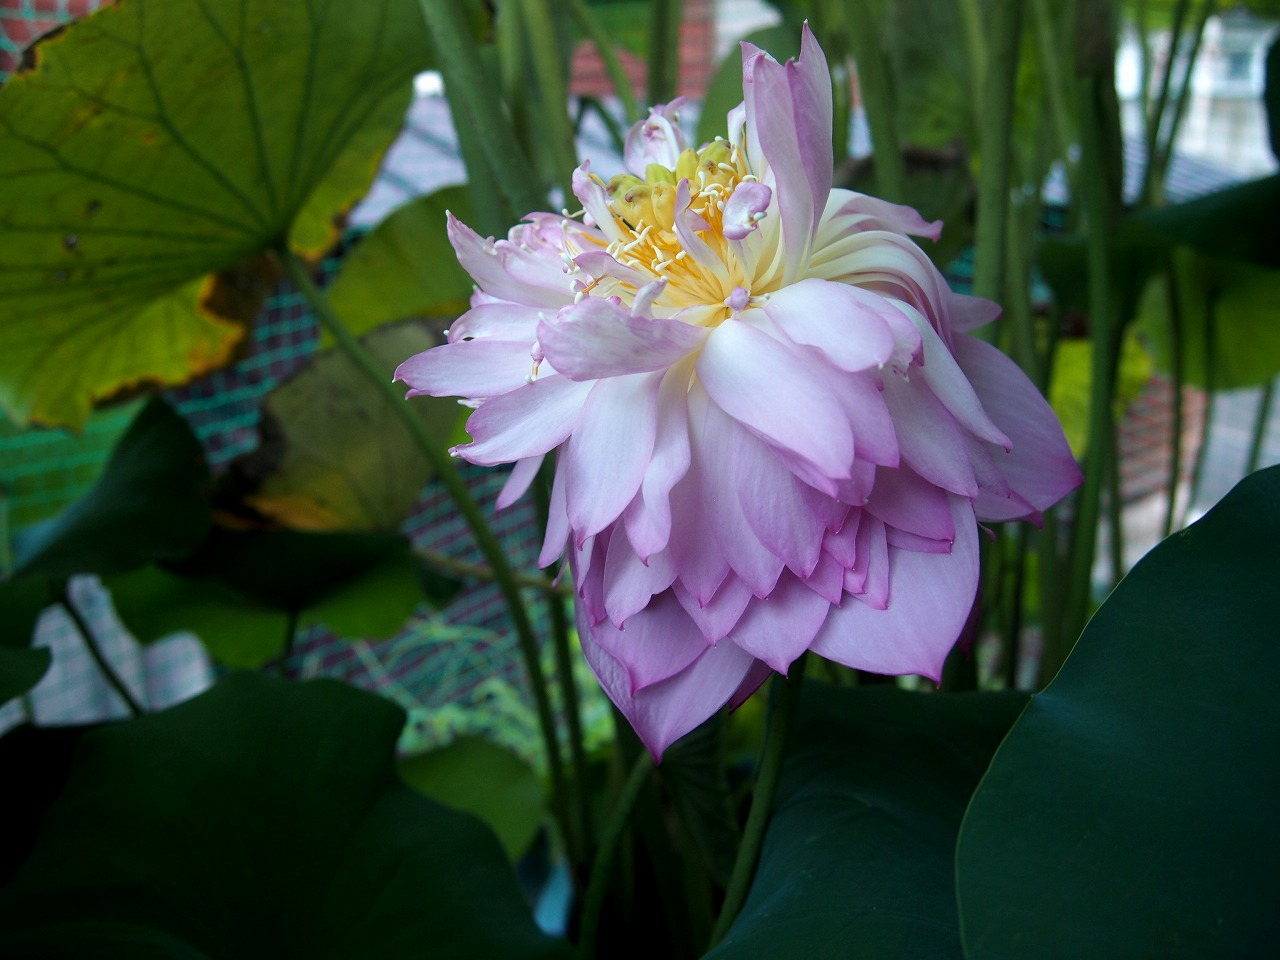 20160822-Lotus_Hishinko-O01.jpg